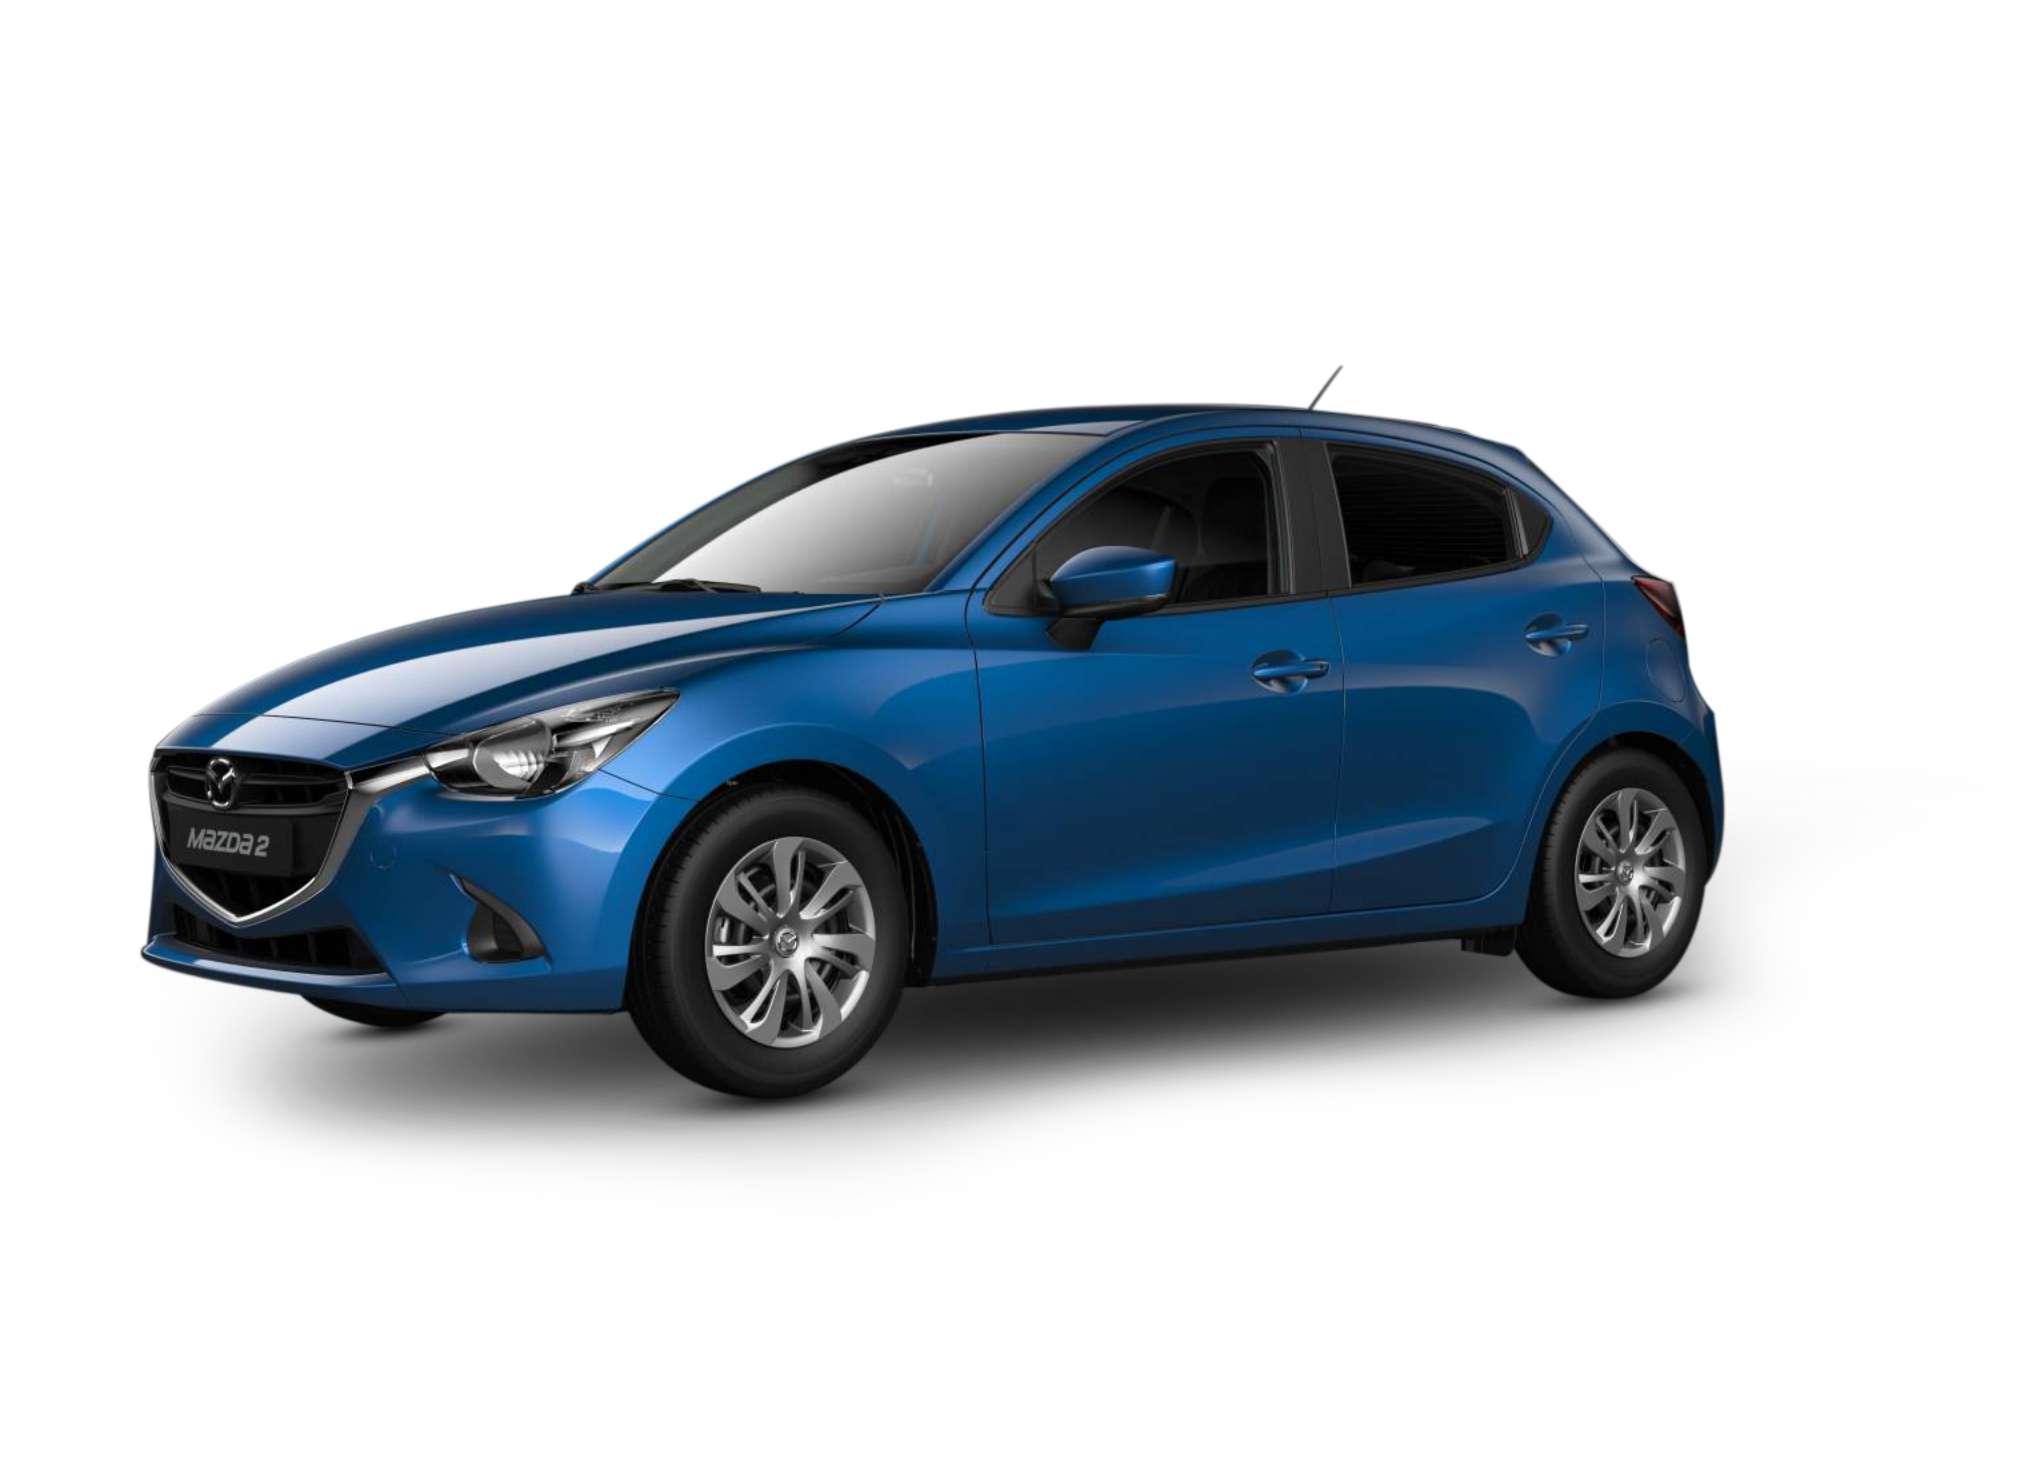 Mazda 2 2019 11017 KM | Car Subscription | Invygo